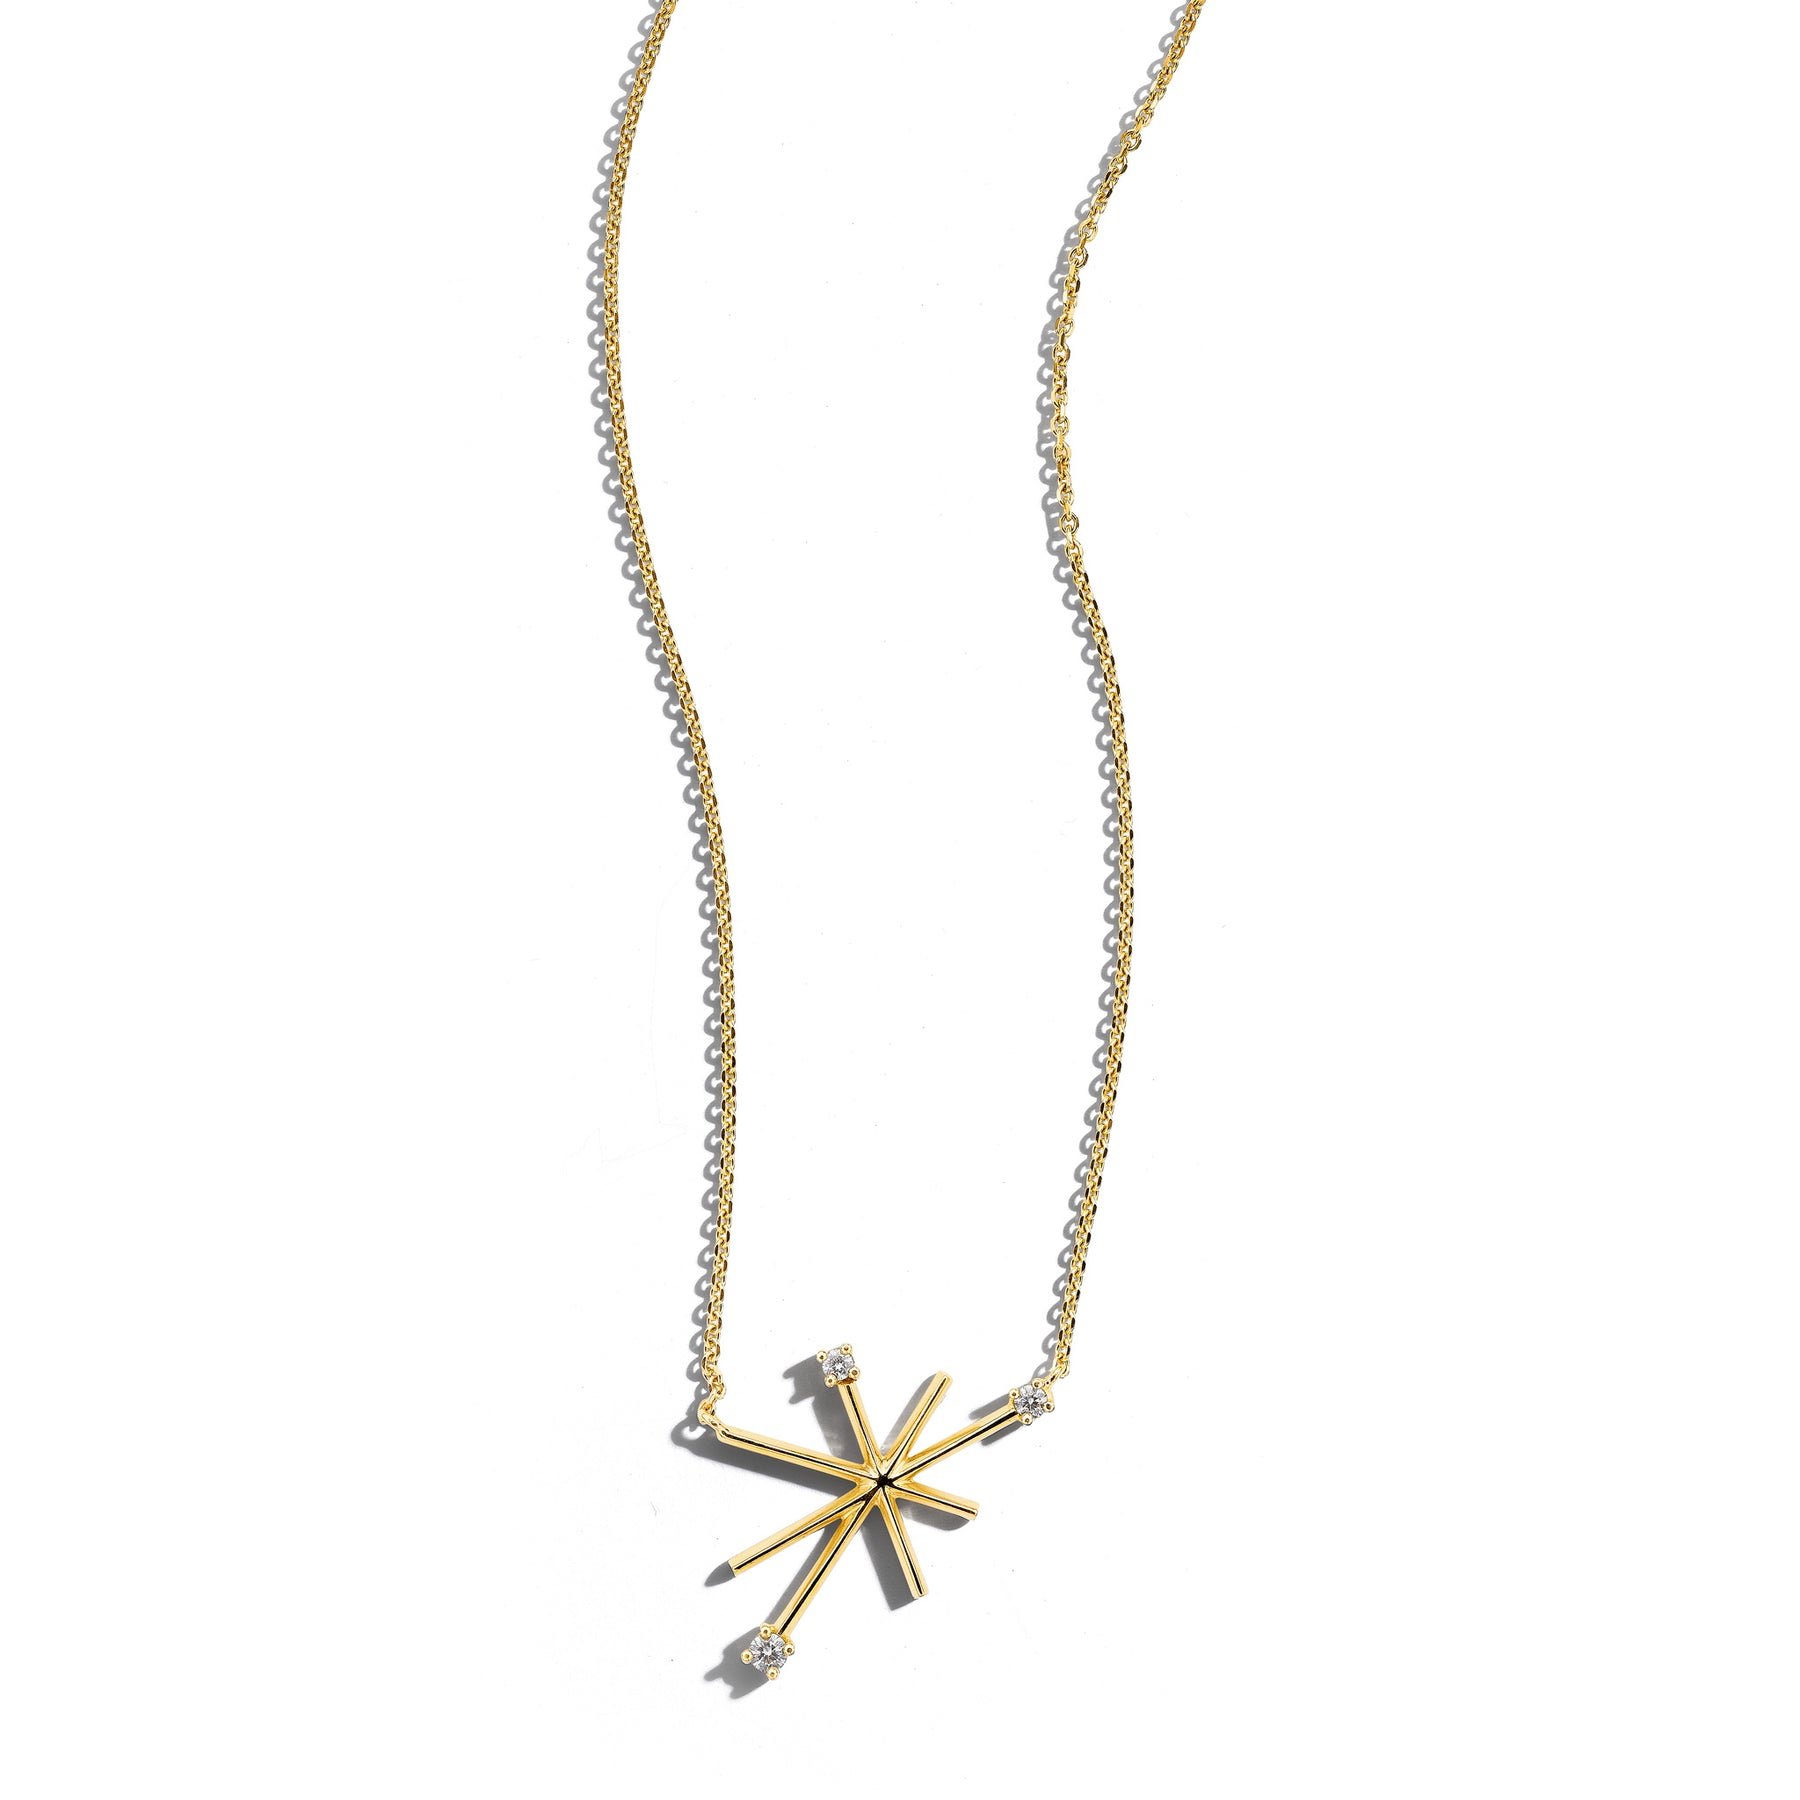 Mimi-So-Piece-Star-Necklace-Small_18k Yellow Gold